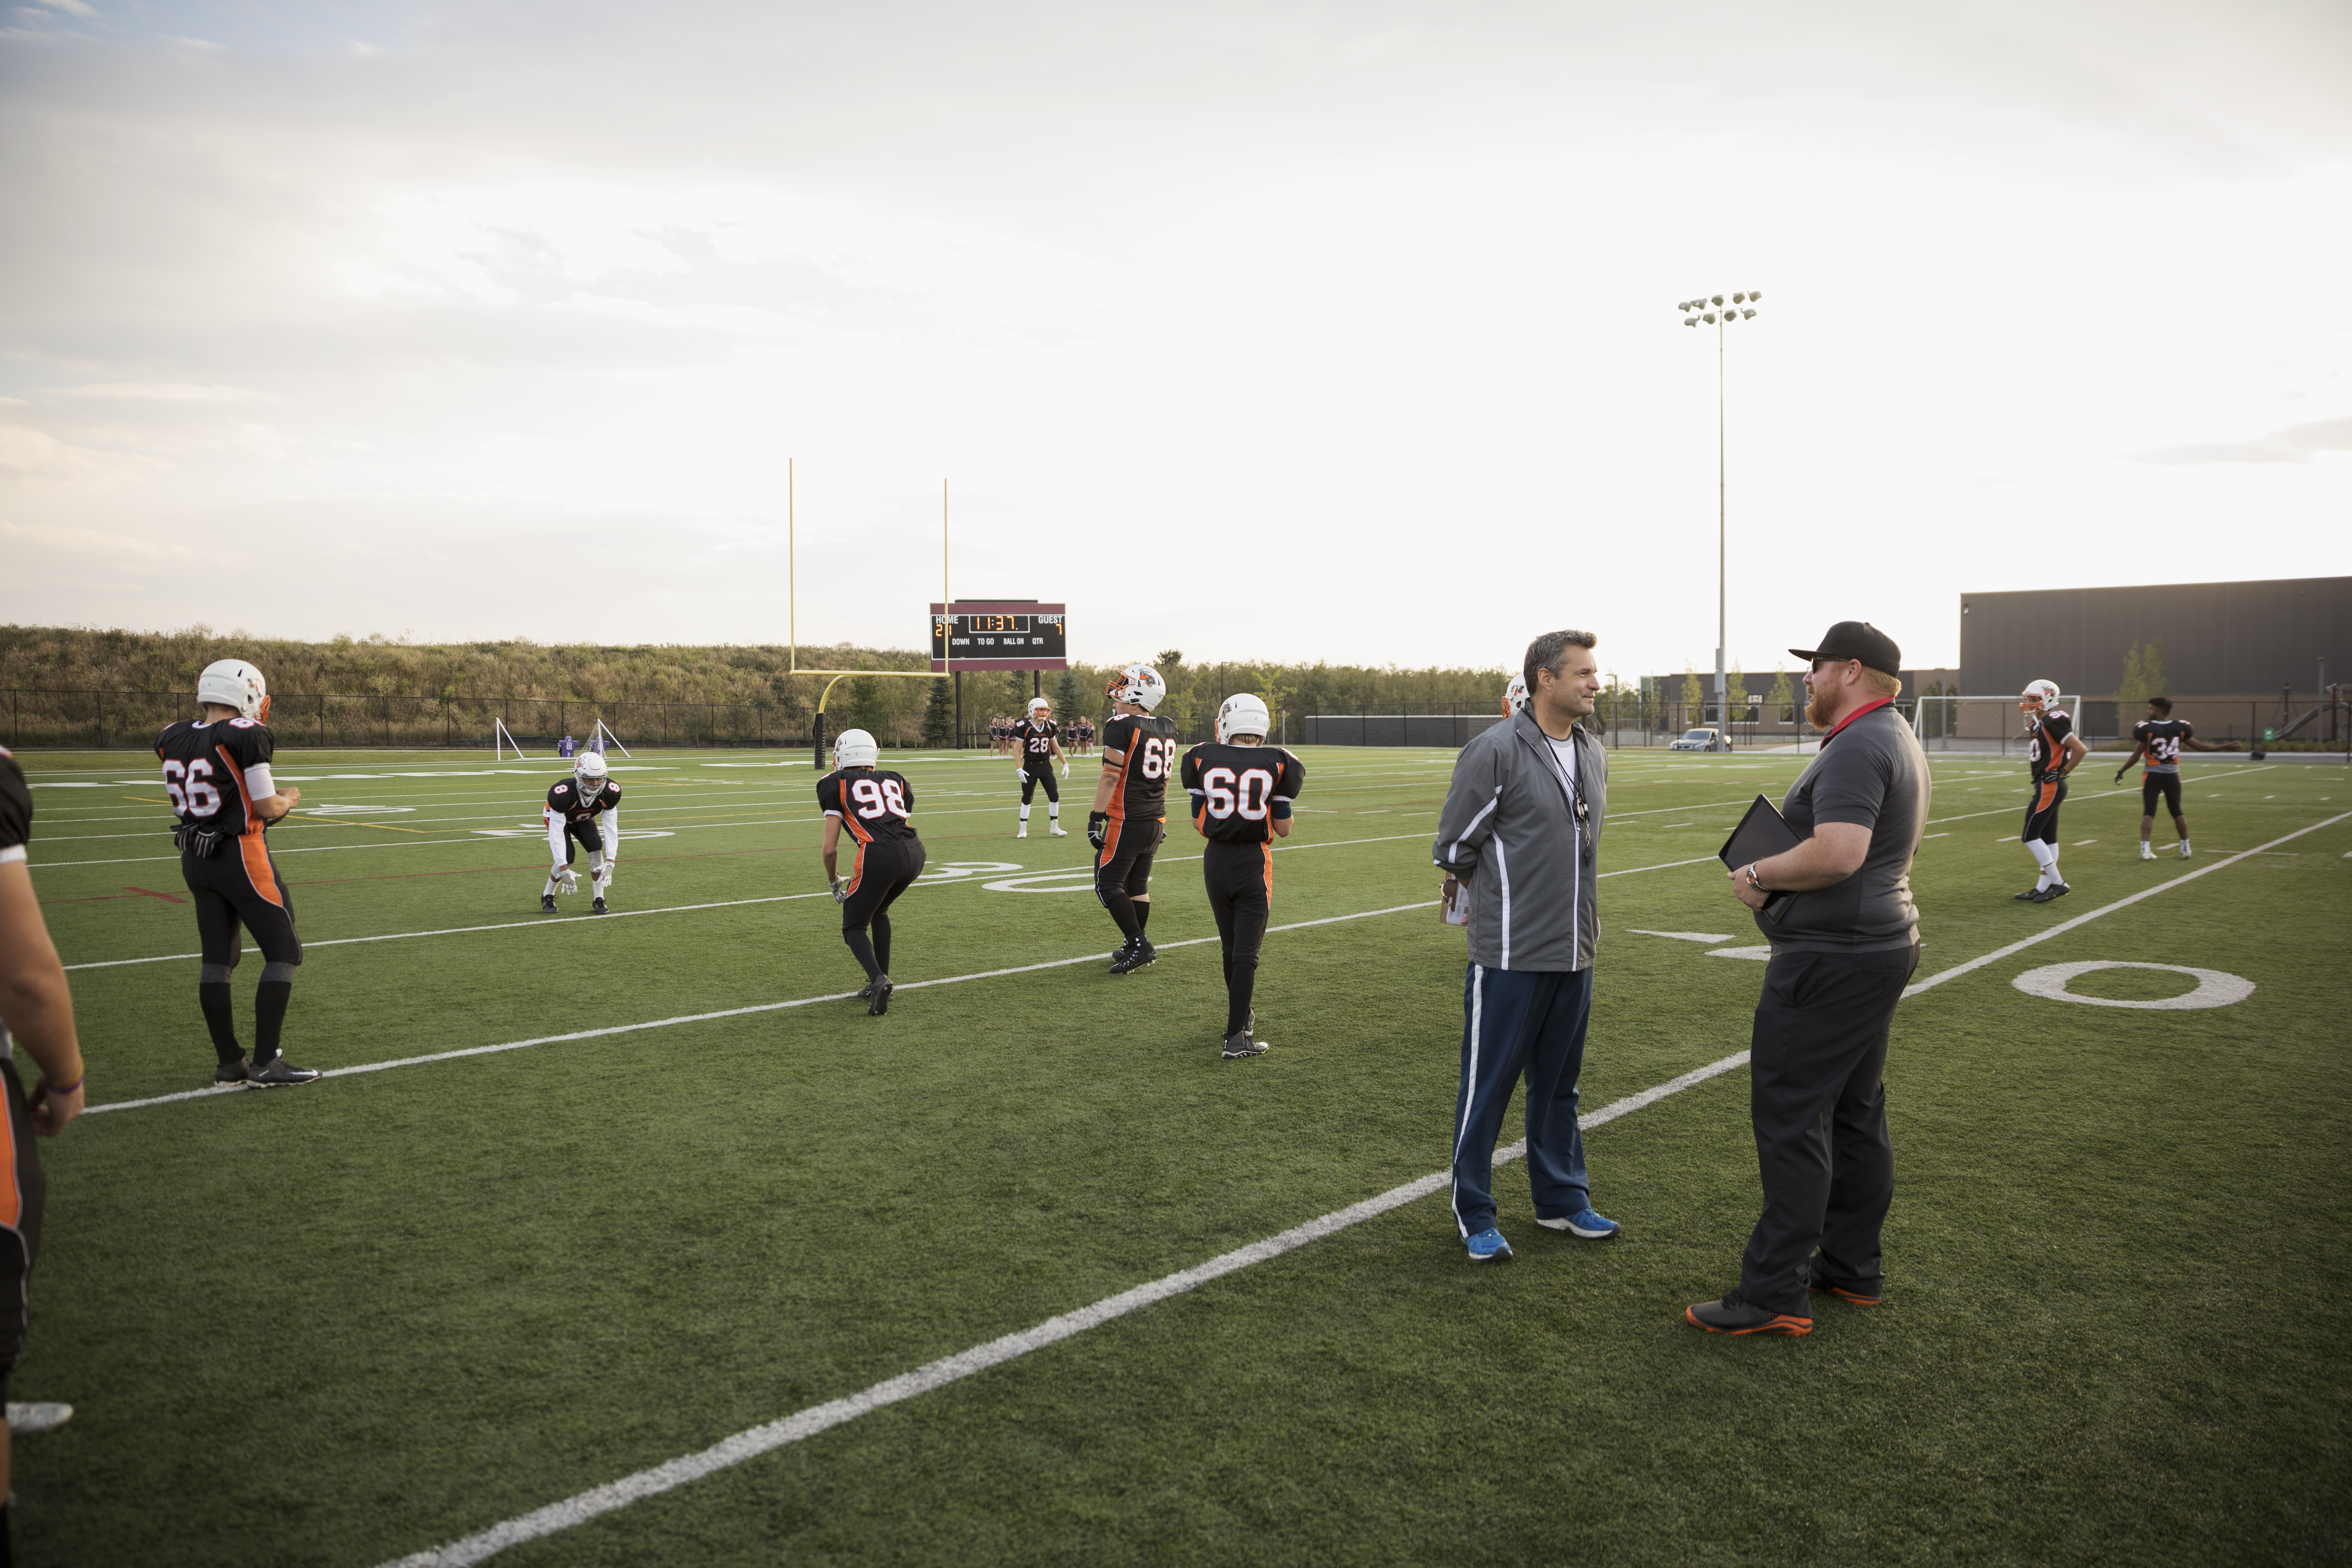 Coaches talking near teenage boy high school football team on football field